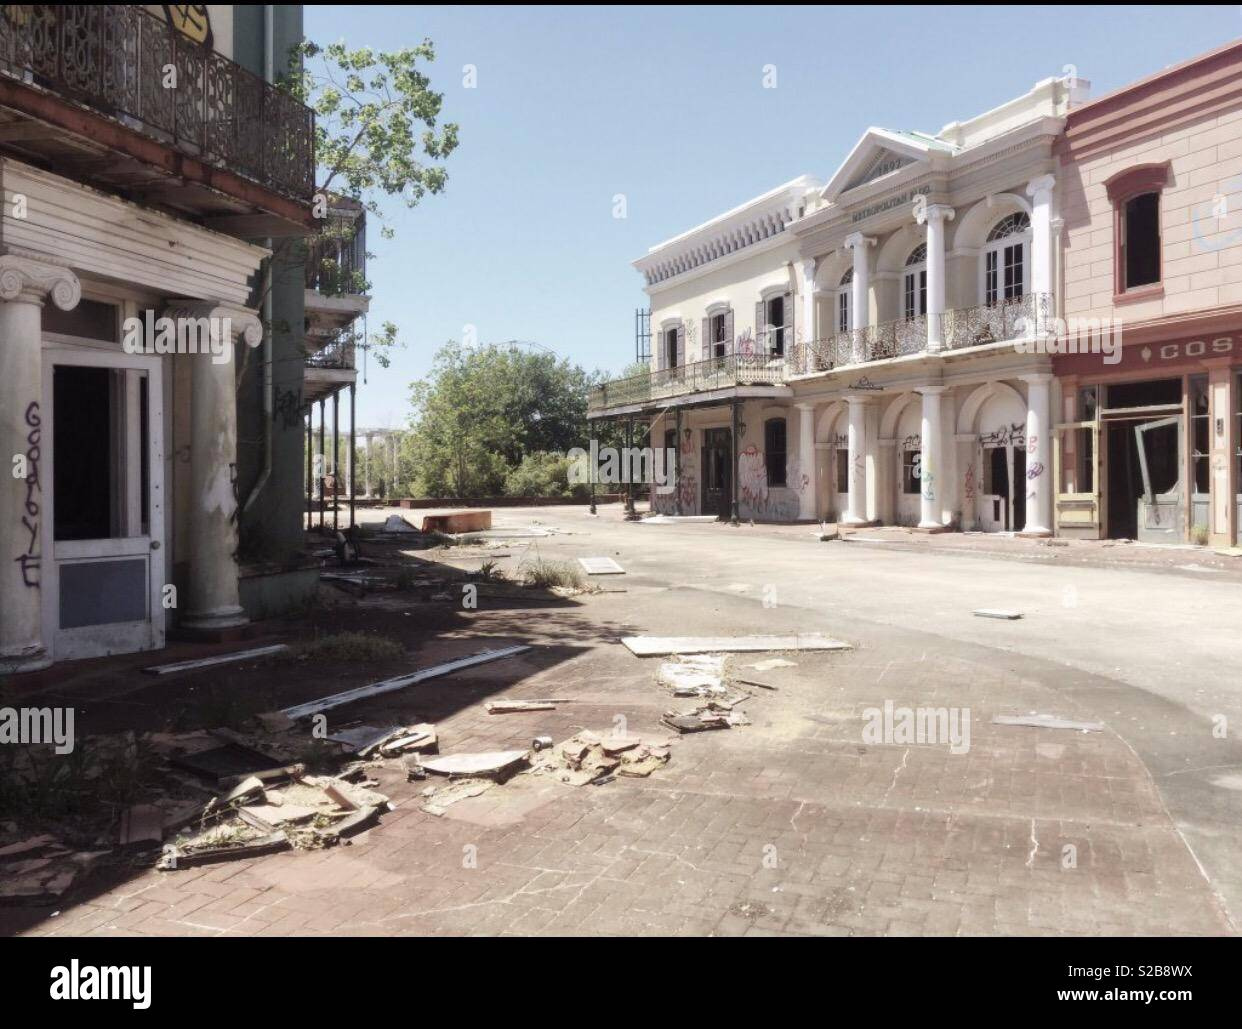 Ghost town near New Orleans - Stock Image